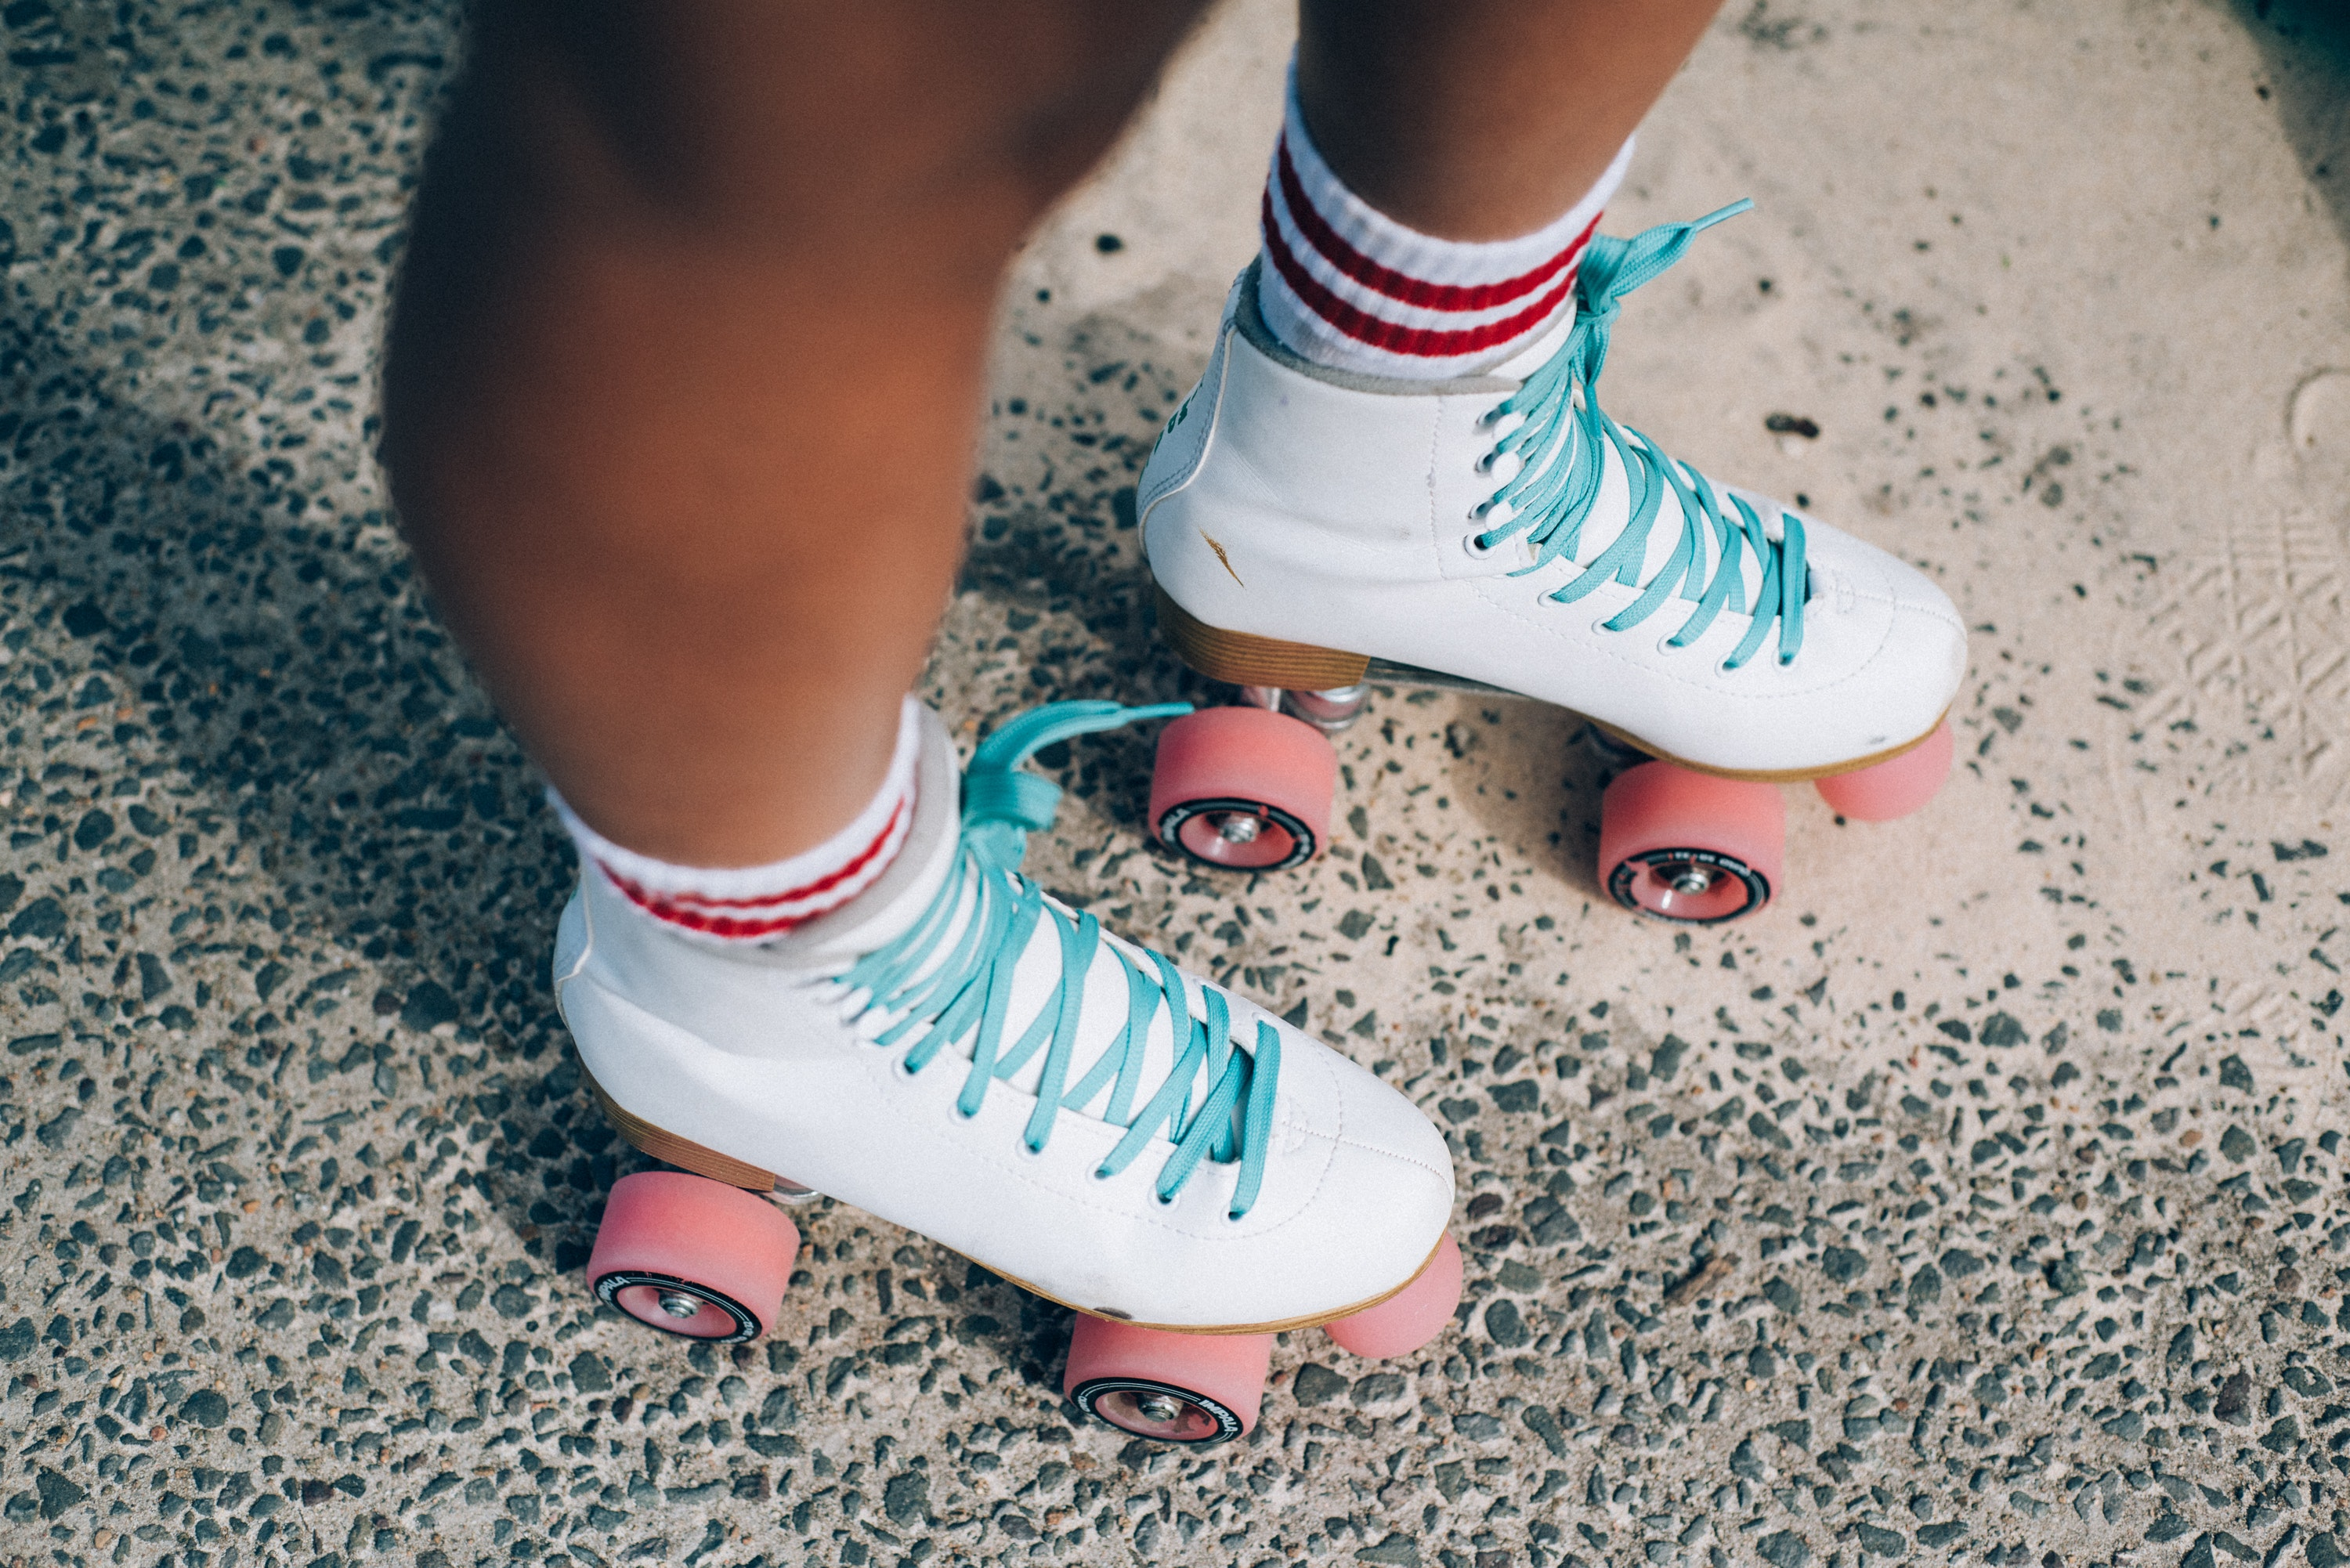 White-and-red roller skates